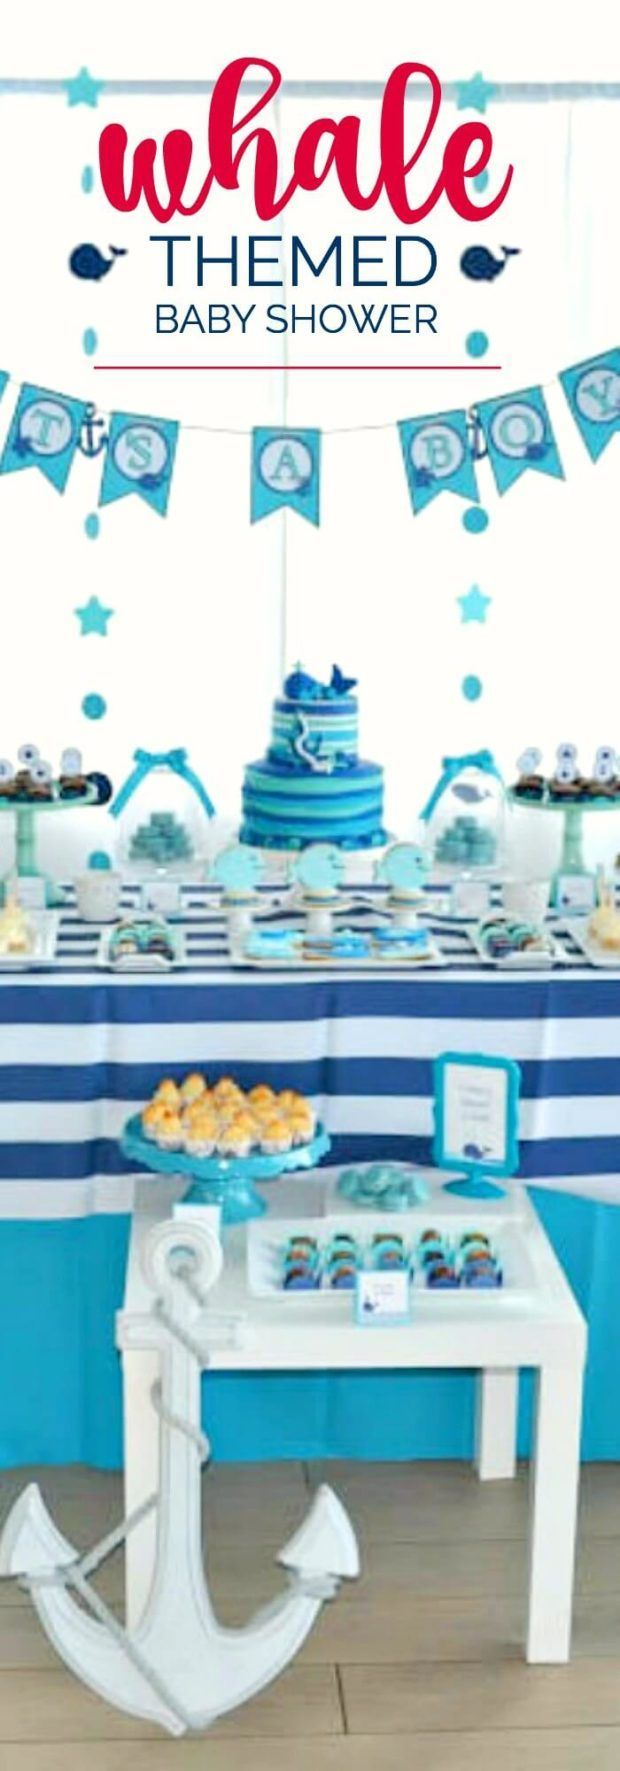 A Boy's Whale Themed Baby Shower via @spaceshipslb